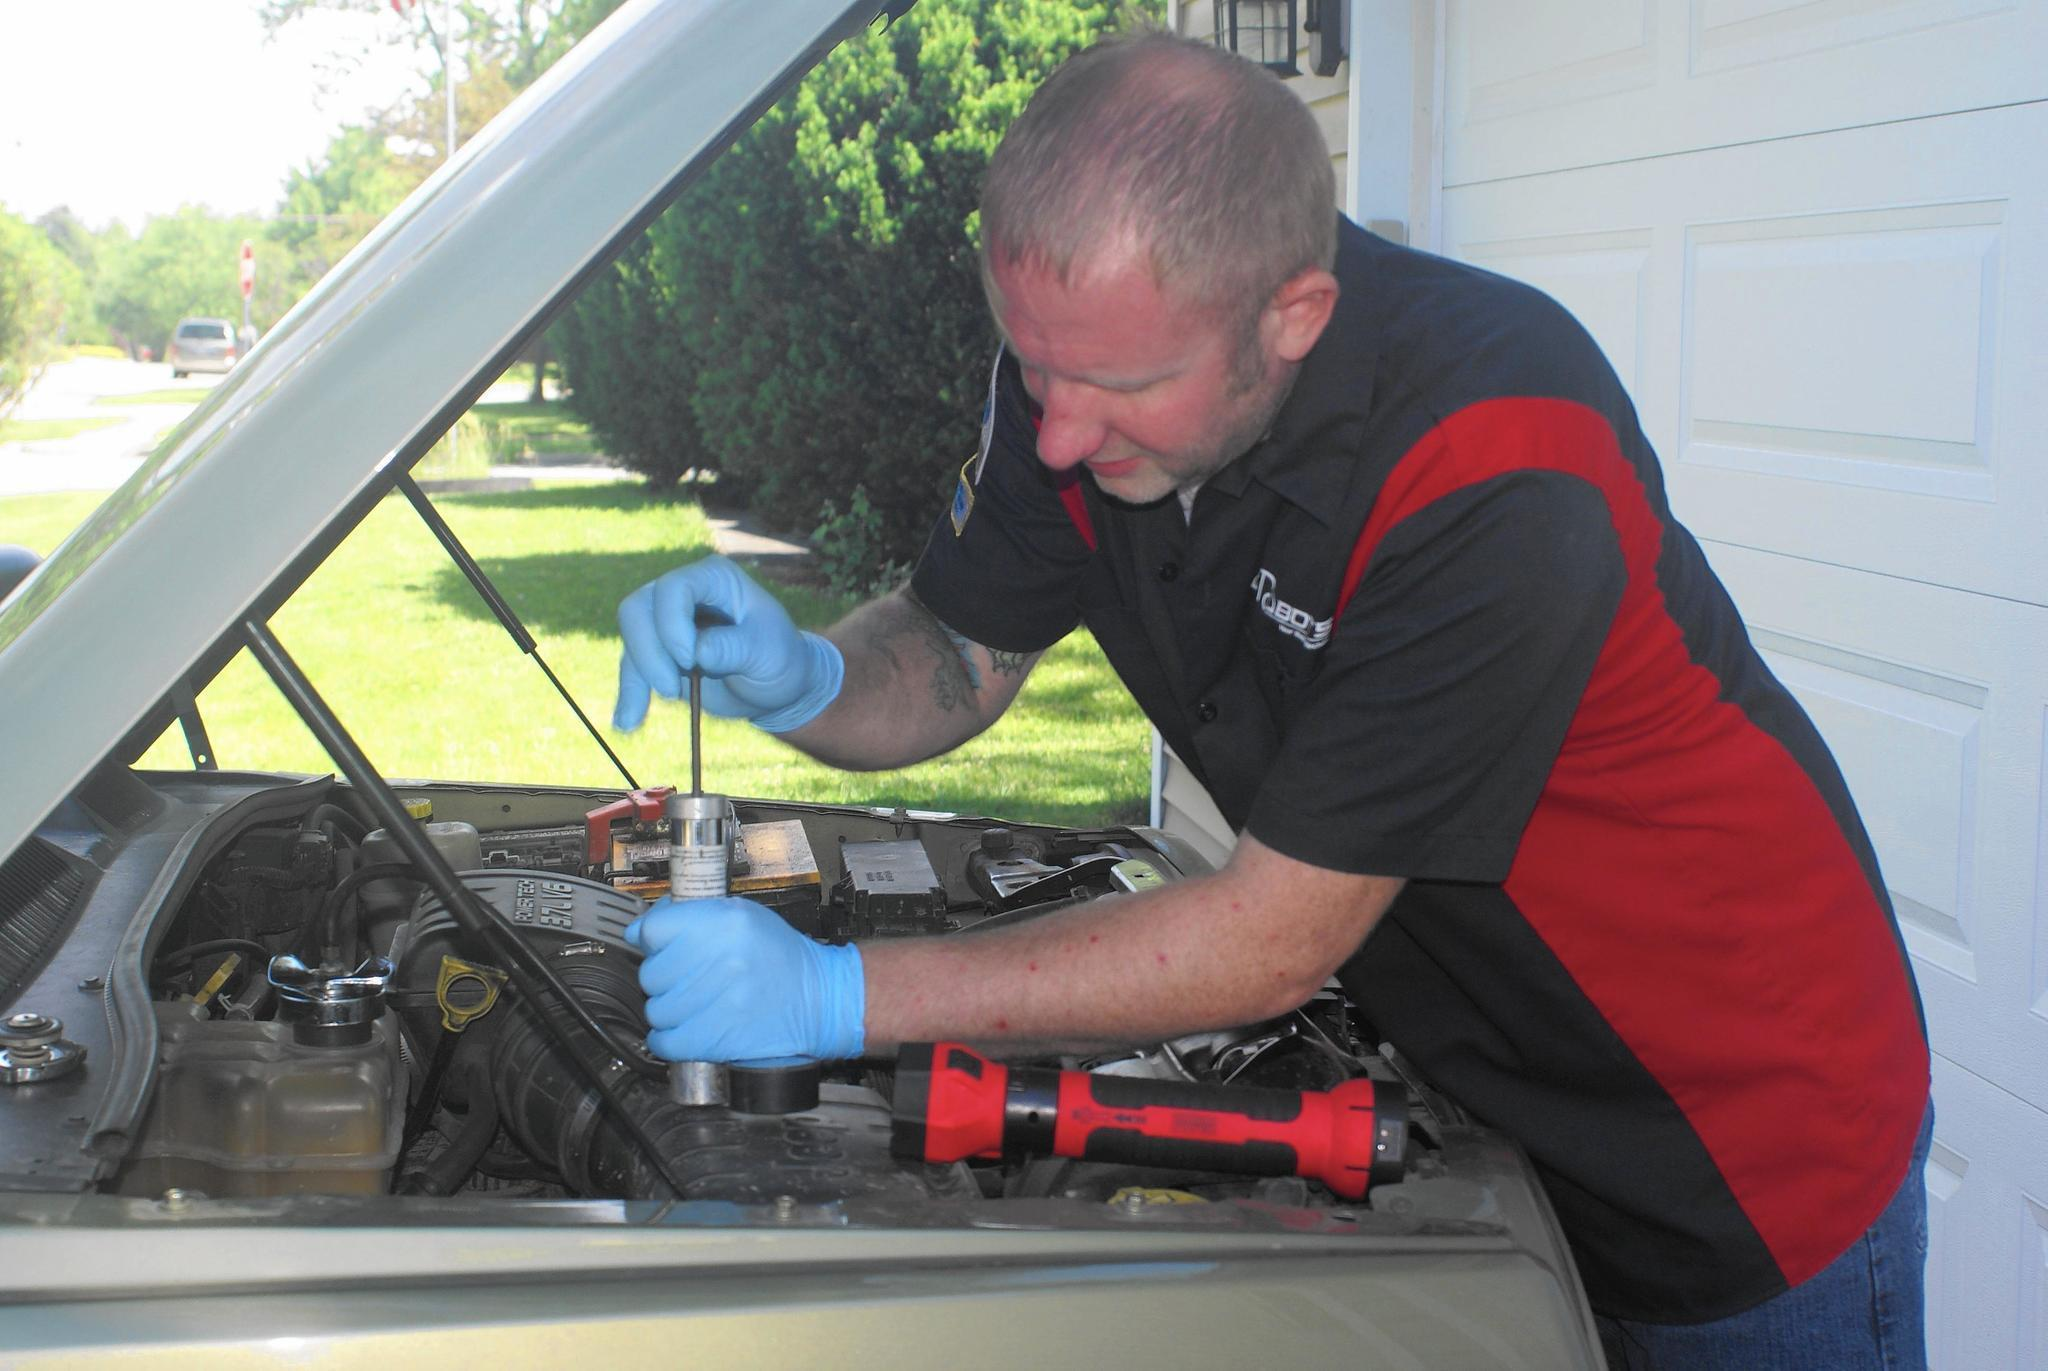 Mechanic Quotes Adorable Mobile Mechanics Diagnose And Fix Cars At Owners' Homes  Chicago